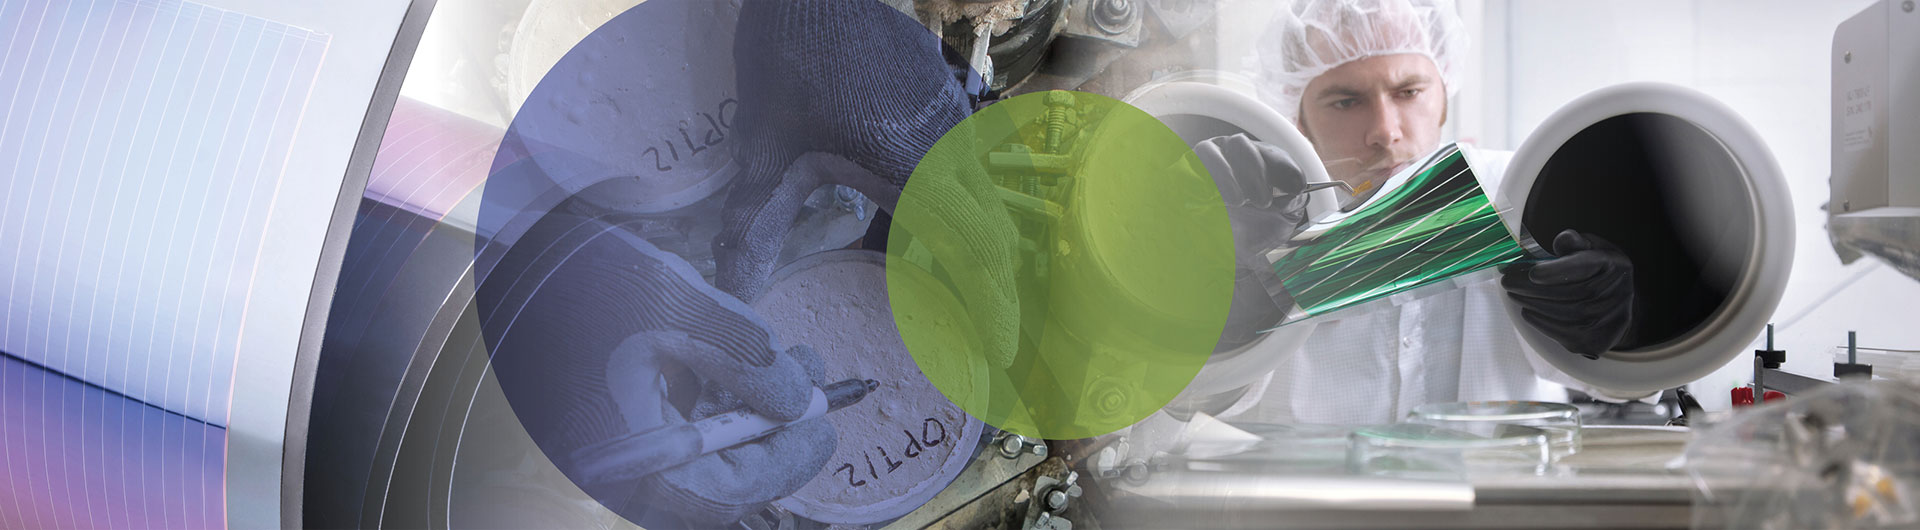 Solar Impulse Foundation 1000 Profitable Solutions For The Environment